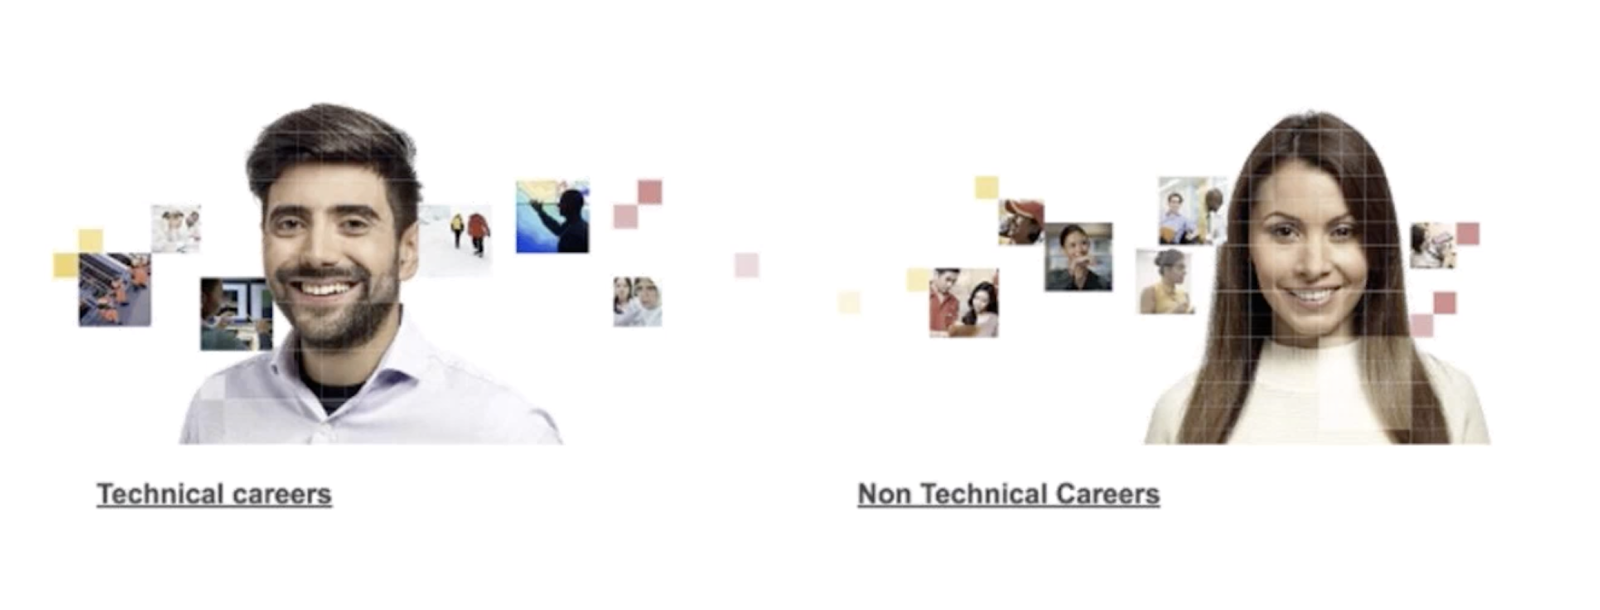 Gender bias for technical vs. non-technical careers